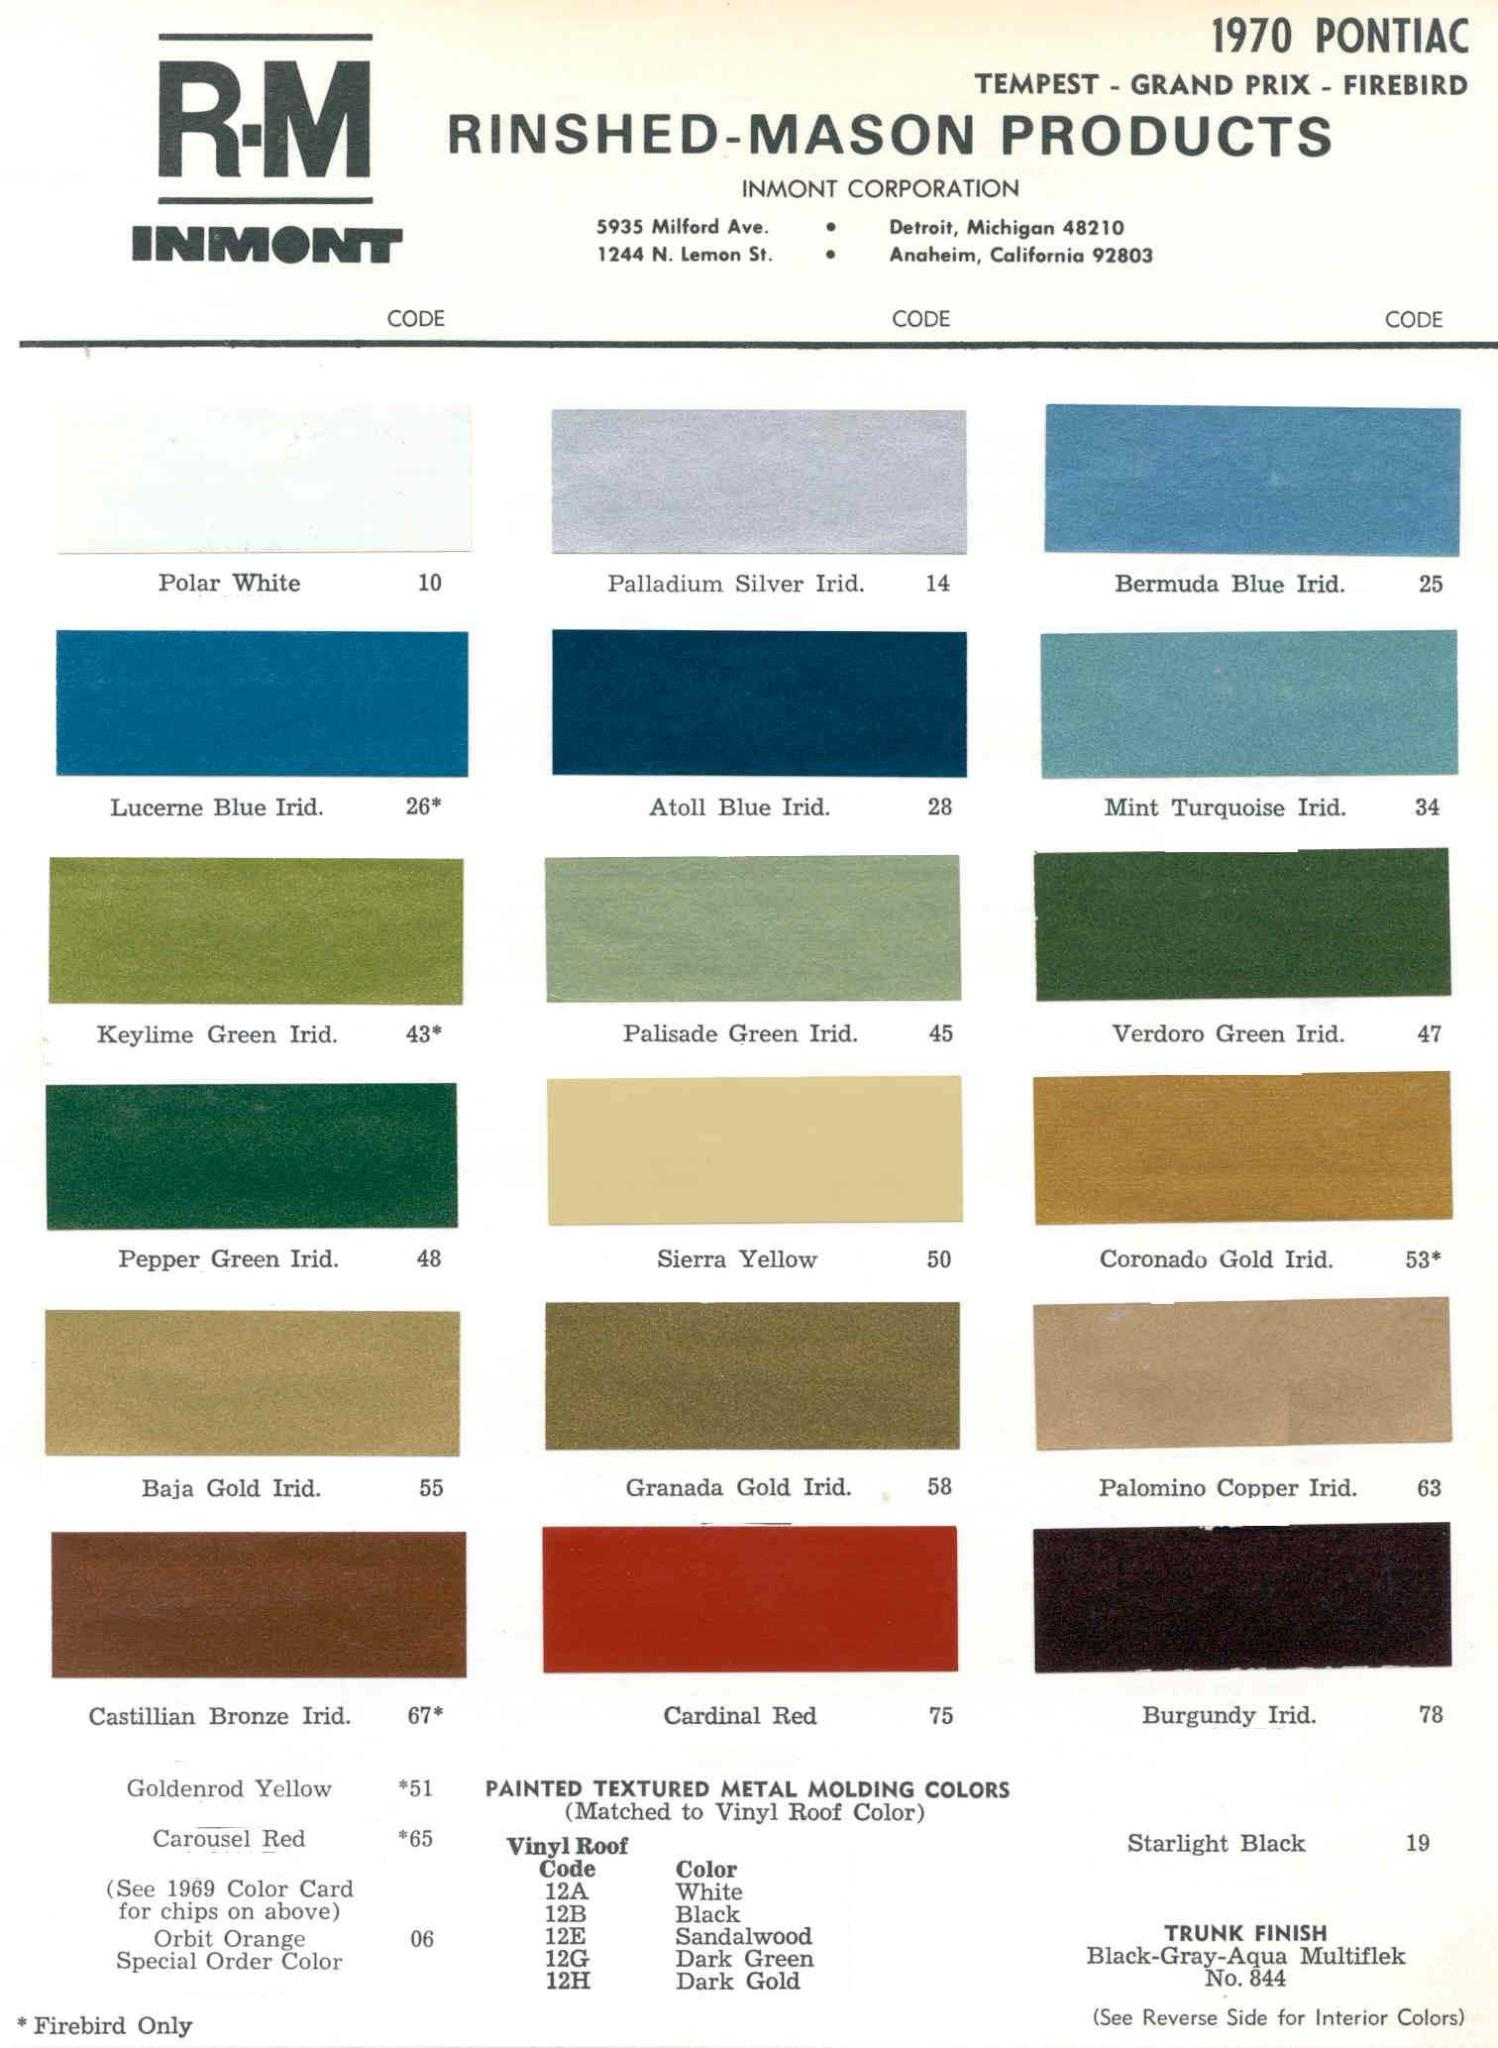 Color Code and Paint Color Chart for Pontiac in 1970